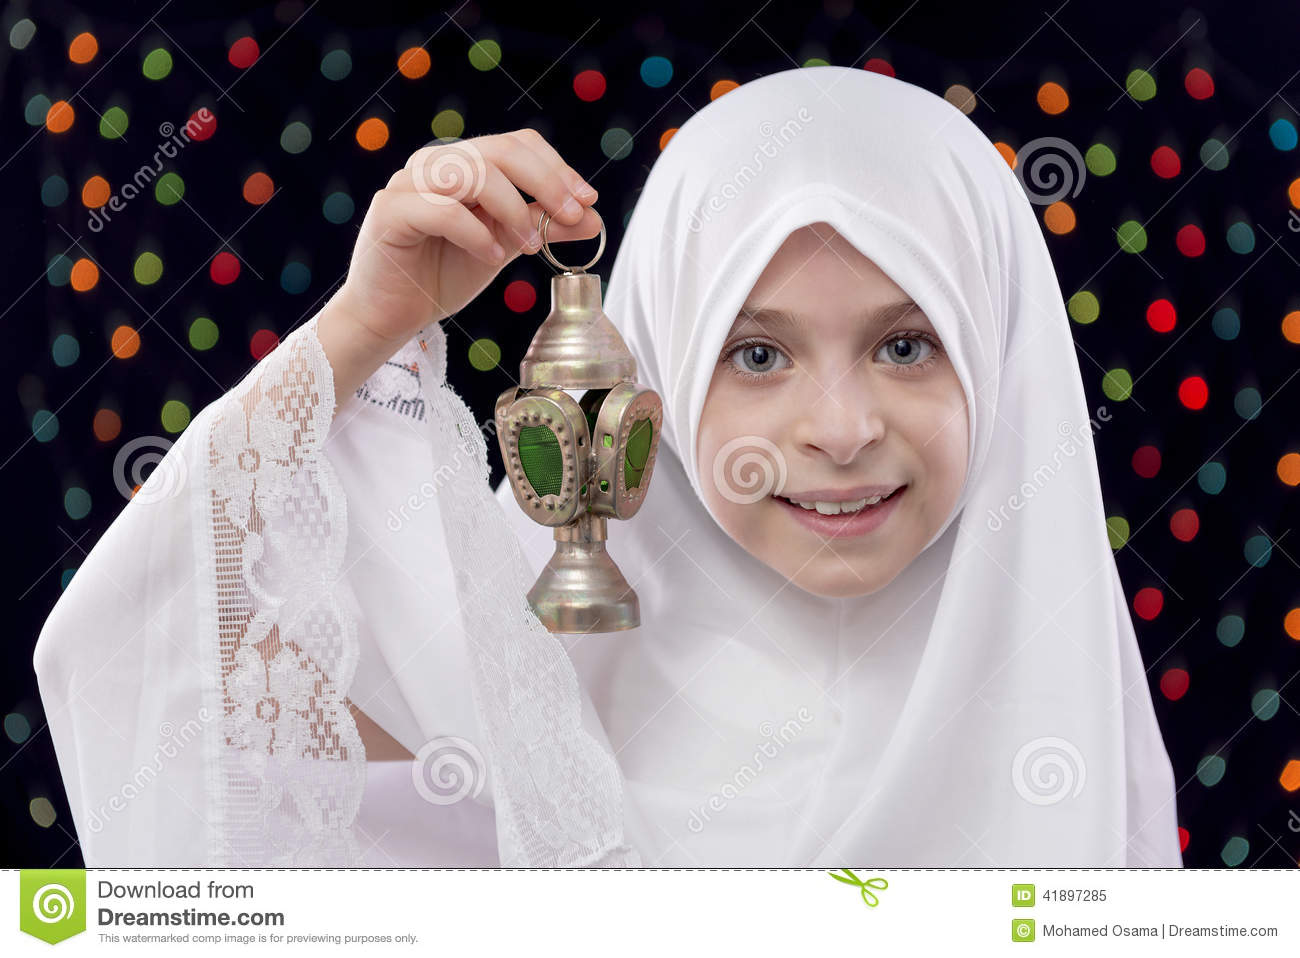 goehner muslim girl personals Muslim girl problems: dating it was a non-muslim thing too the more the girl dated the more guys looked down on her and the less likely they would marry her.